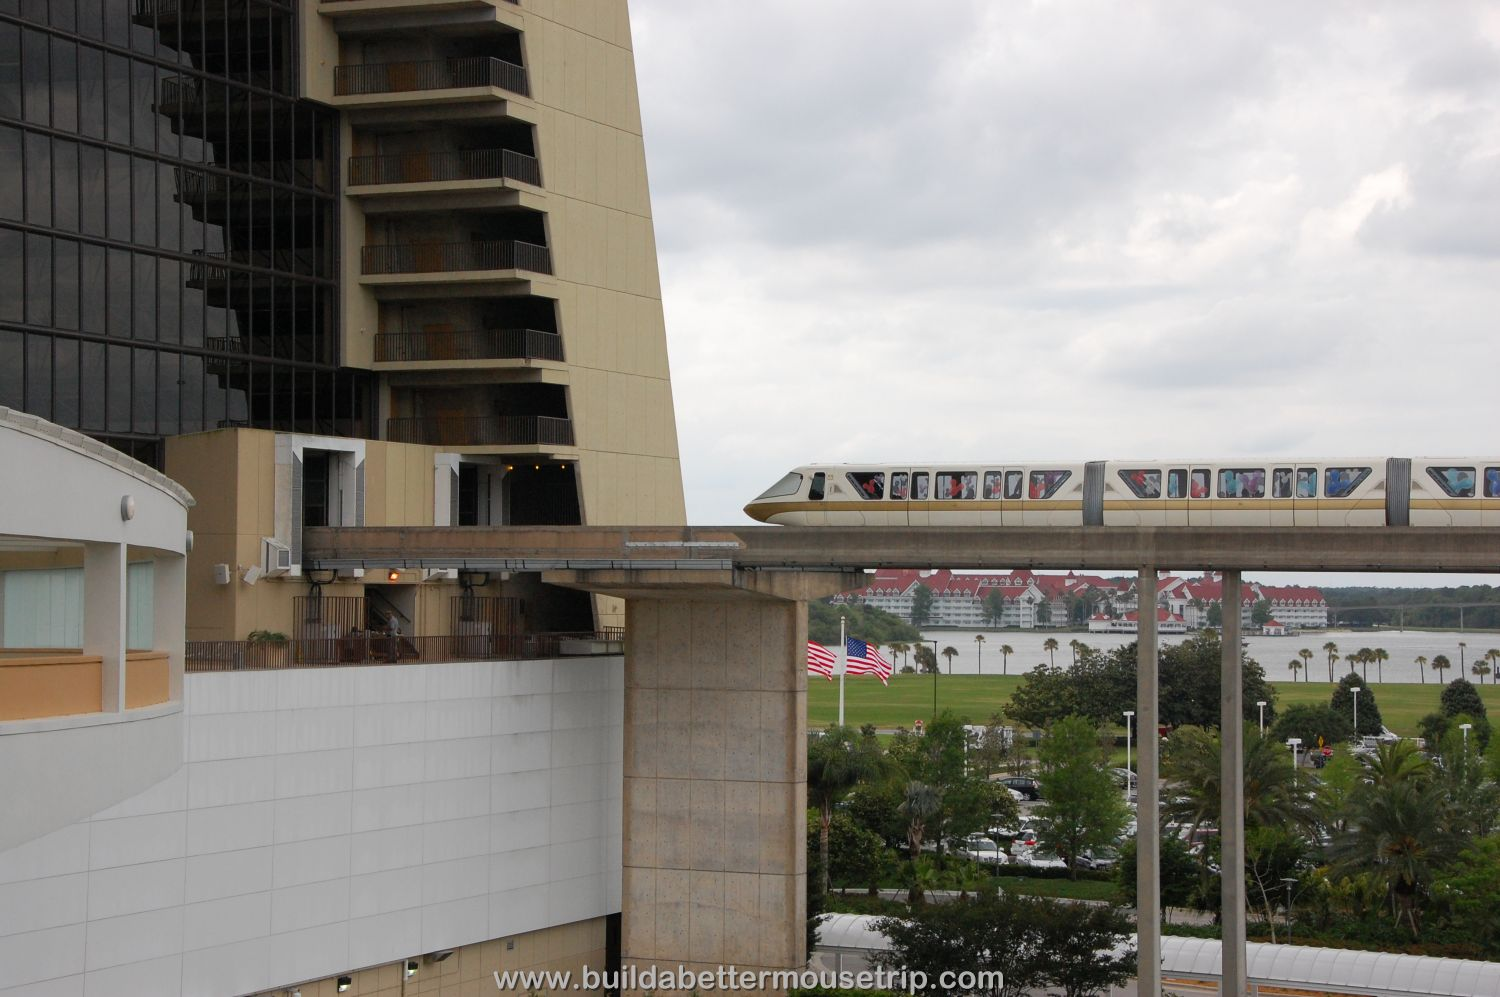 Disney's Contemporary Resort Photos & Information - The monorail loop passes right through the Contemporary's Grand Canyon Concourse